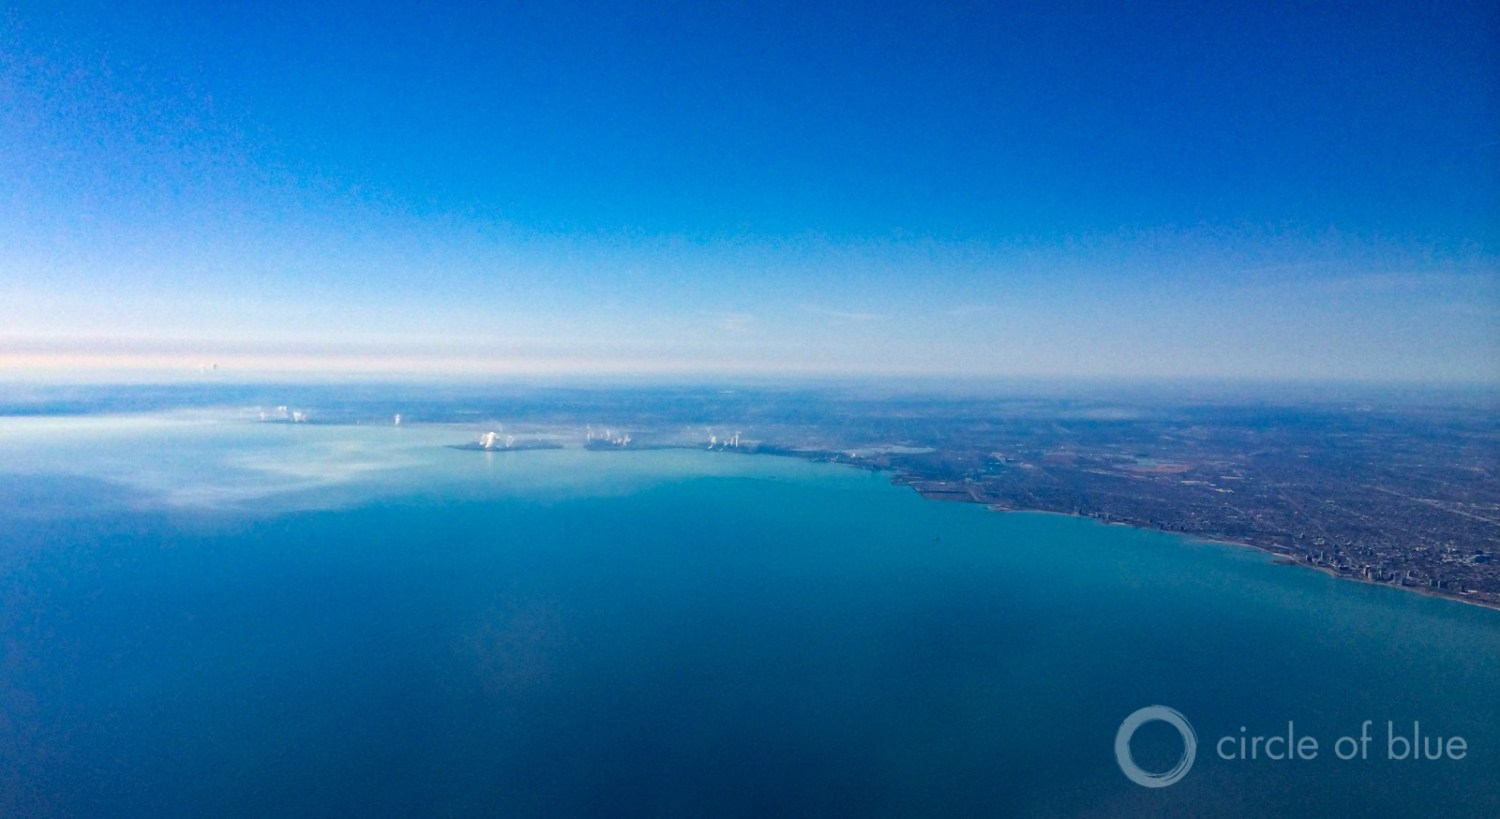 The city of Waukesha, Wisconsin, located just outside of the Great Lakes Basin, is asking to divert Lake Michigan water for its municipal supplies. The governors of eight Great Lakes states will vote on the proposal Tuesday in Chicago, shown here. Photo © J. Carl Ganter / Circle of Blue